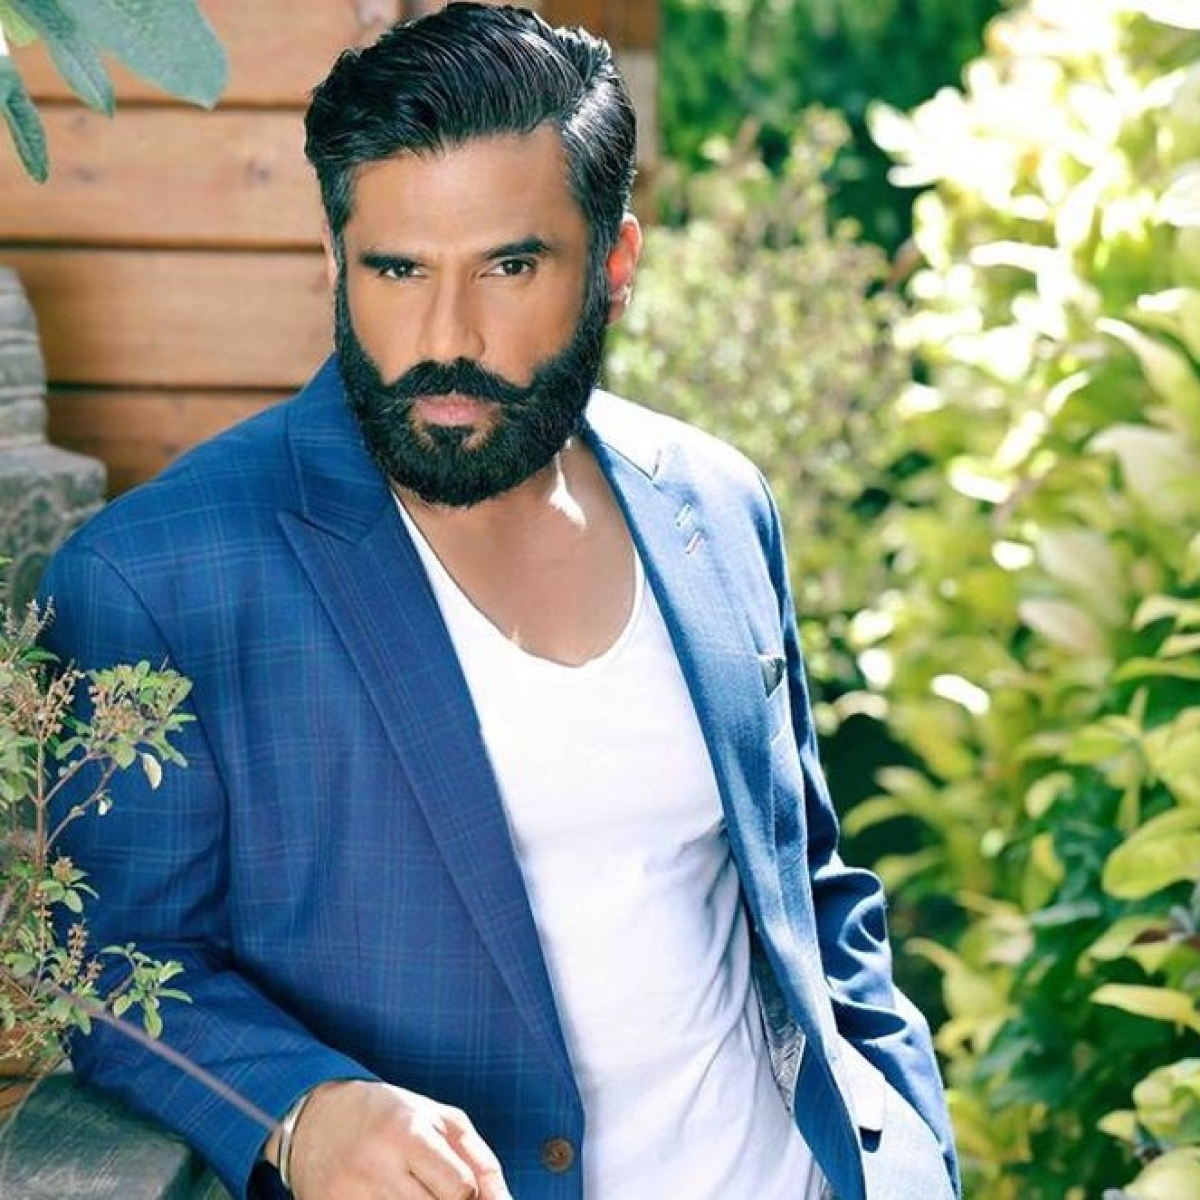 'Being judged over 'success' is mentally disturbing,' says Suniel Shetty